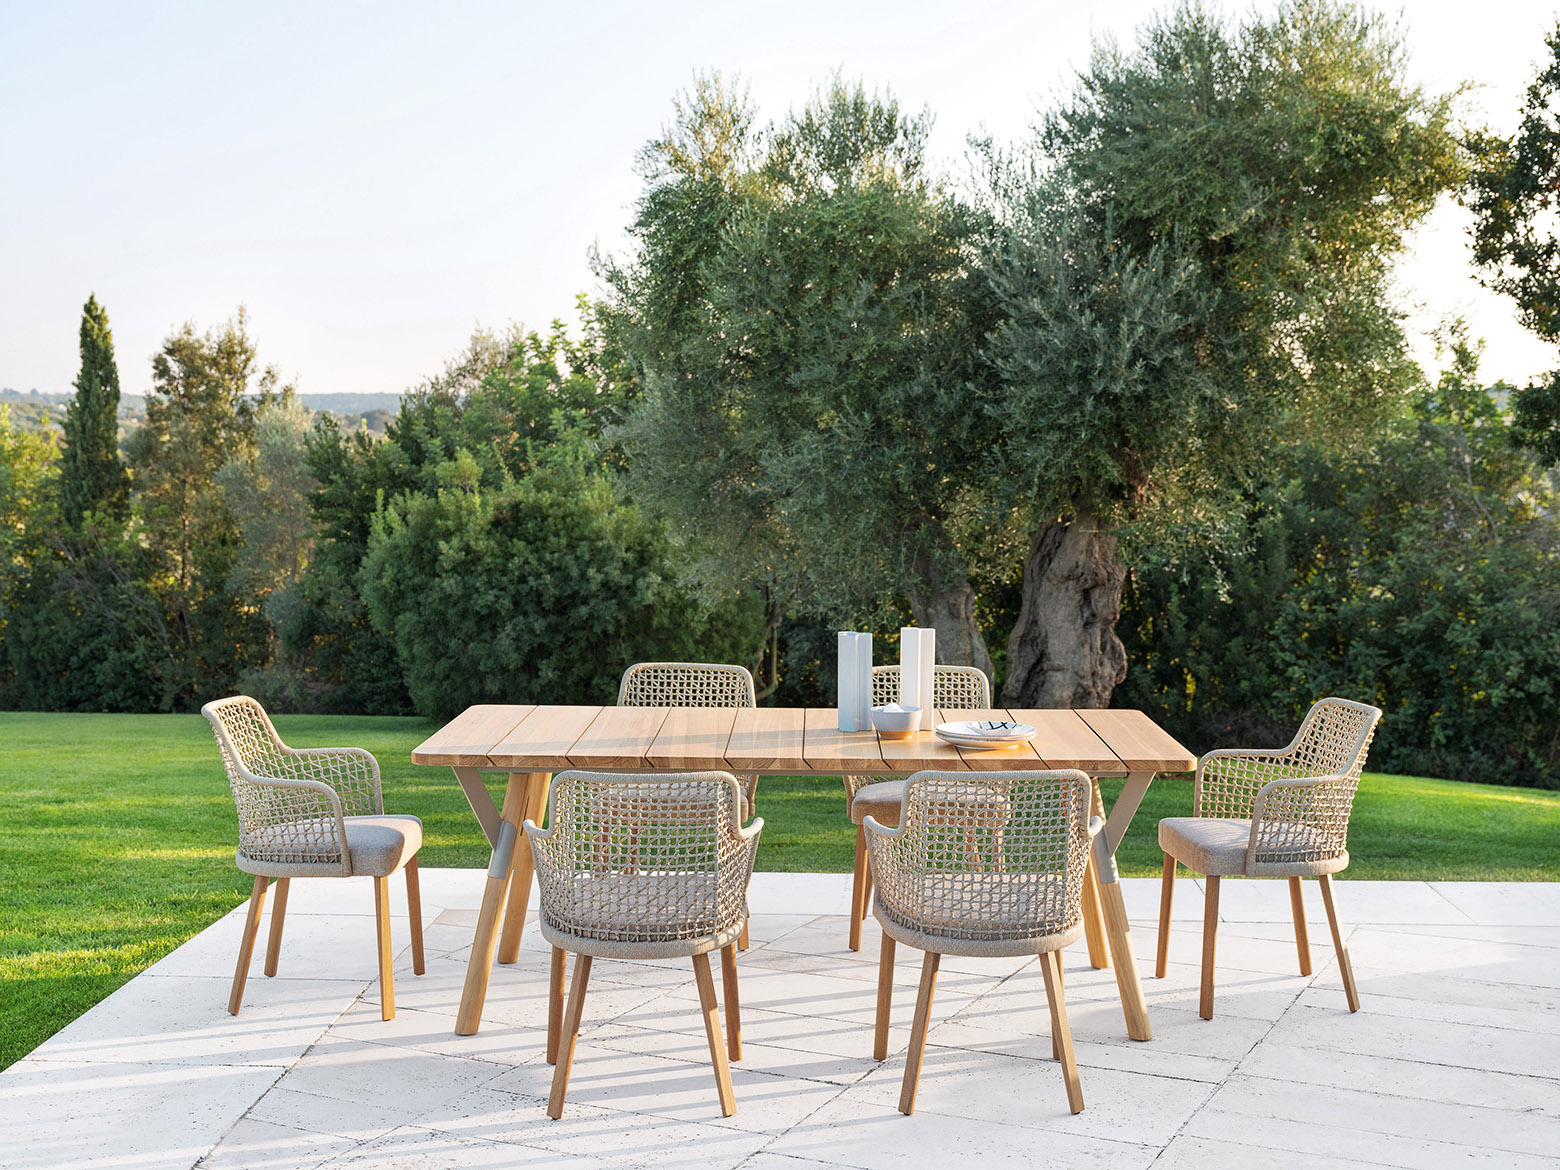 Design Outdoor Furniture majestic modern patio furniture inspiration from houseologycom deck furniturerooftop terrace furniturelounge outdoor furnituregarden Interior Design Outdoor Furniture And Contract Furniture Design Made In Italy Italian Furniture Design Modern Furniture Online